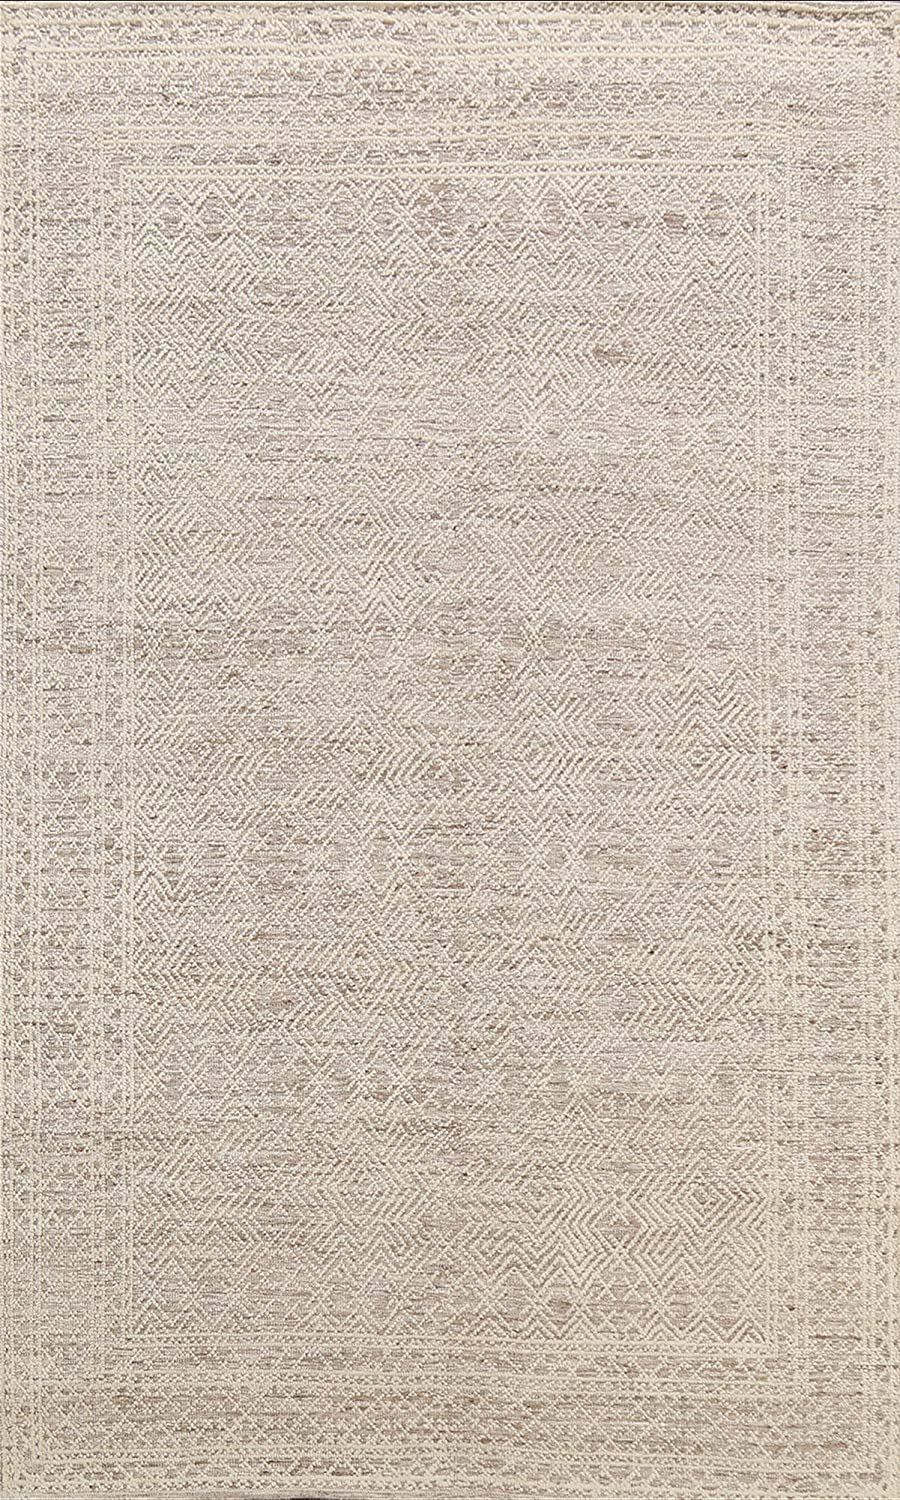 Contemporary Geometric Modern Moroccan Oriental Wool Area Rug Same Max 81% OFF day shipping Ha